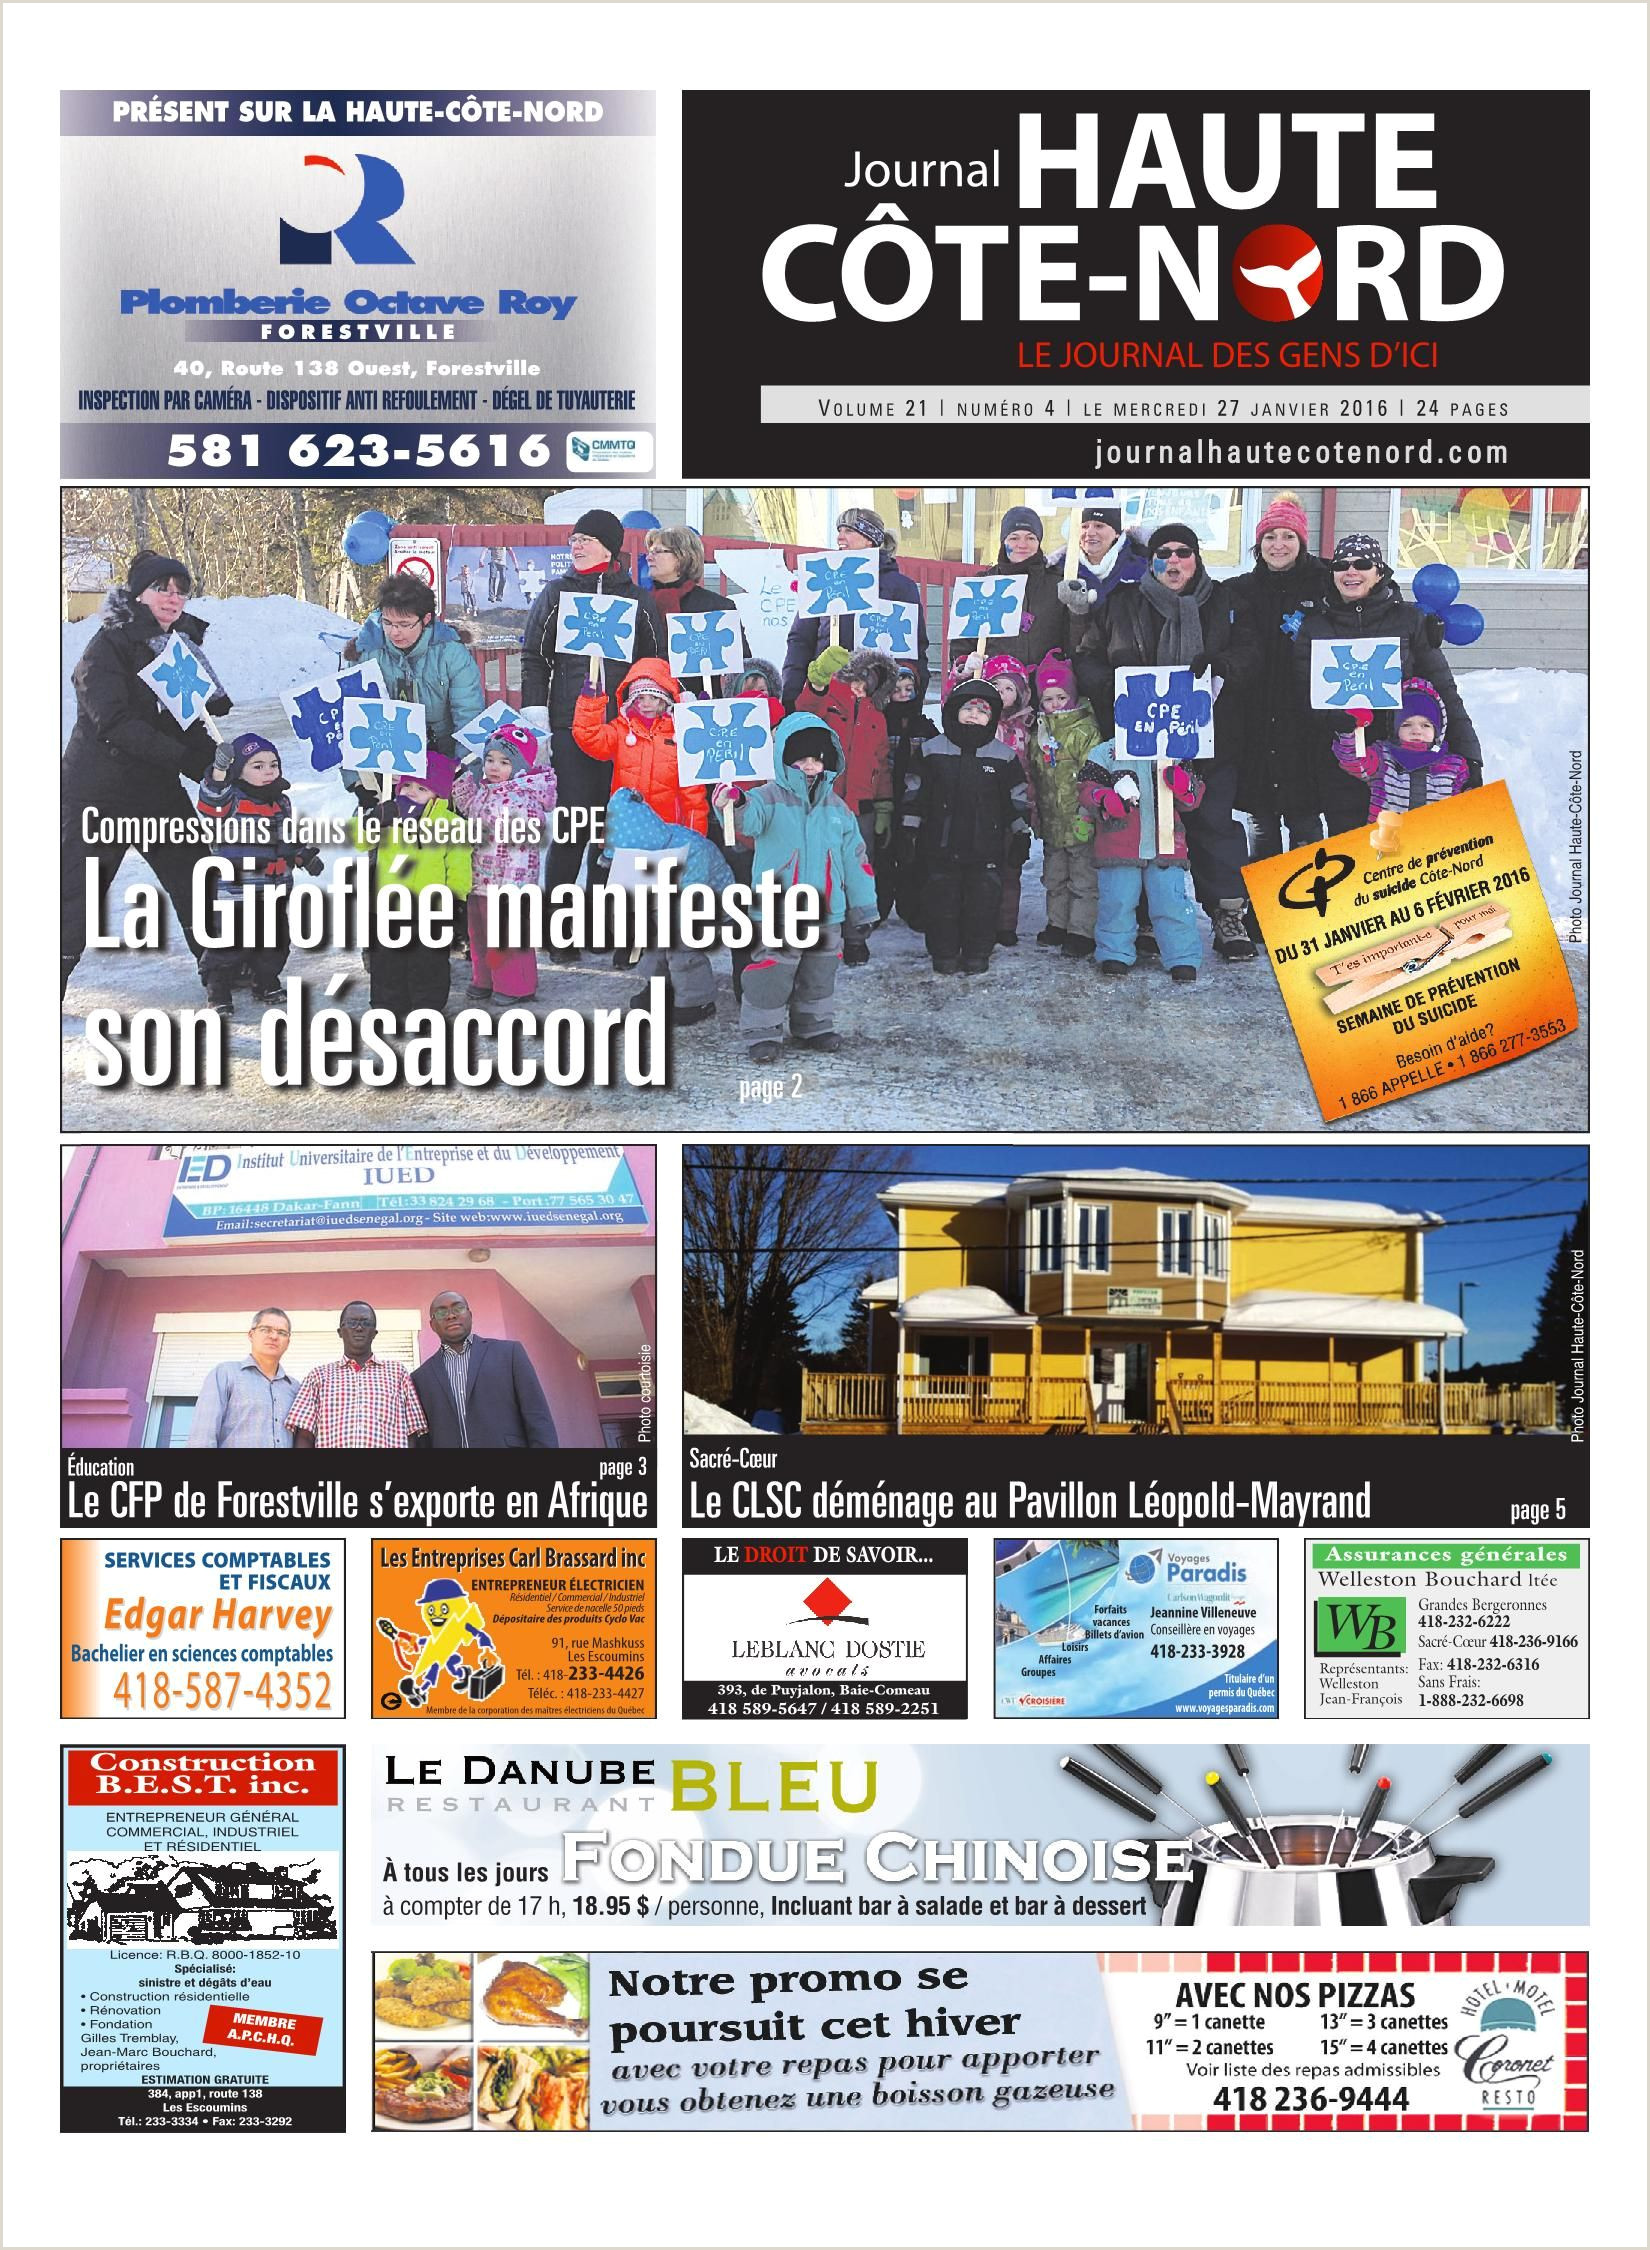 Gerar Curriculo Simples Online Le Haute C´te Nord 27 Janvier 2016 Pages 1 24 Text